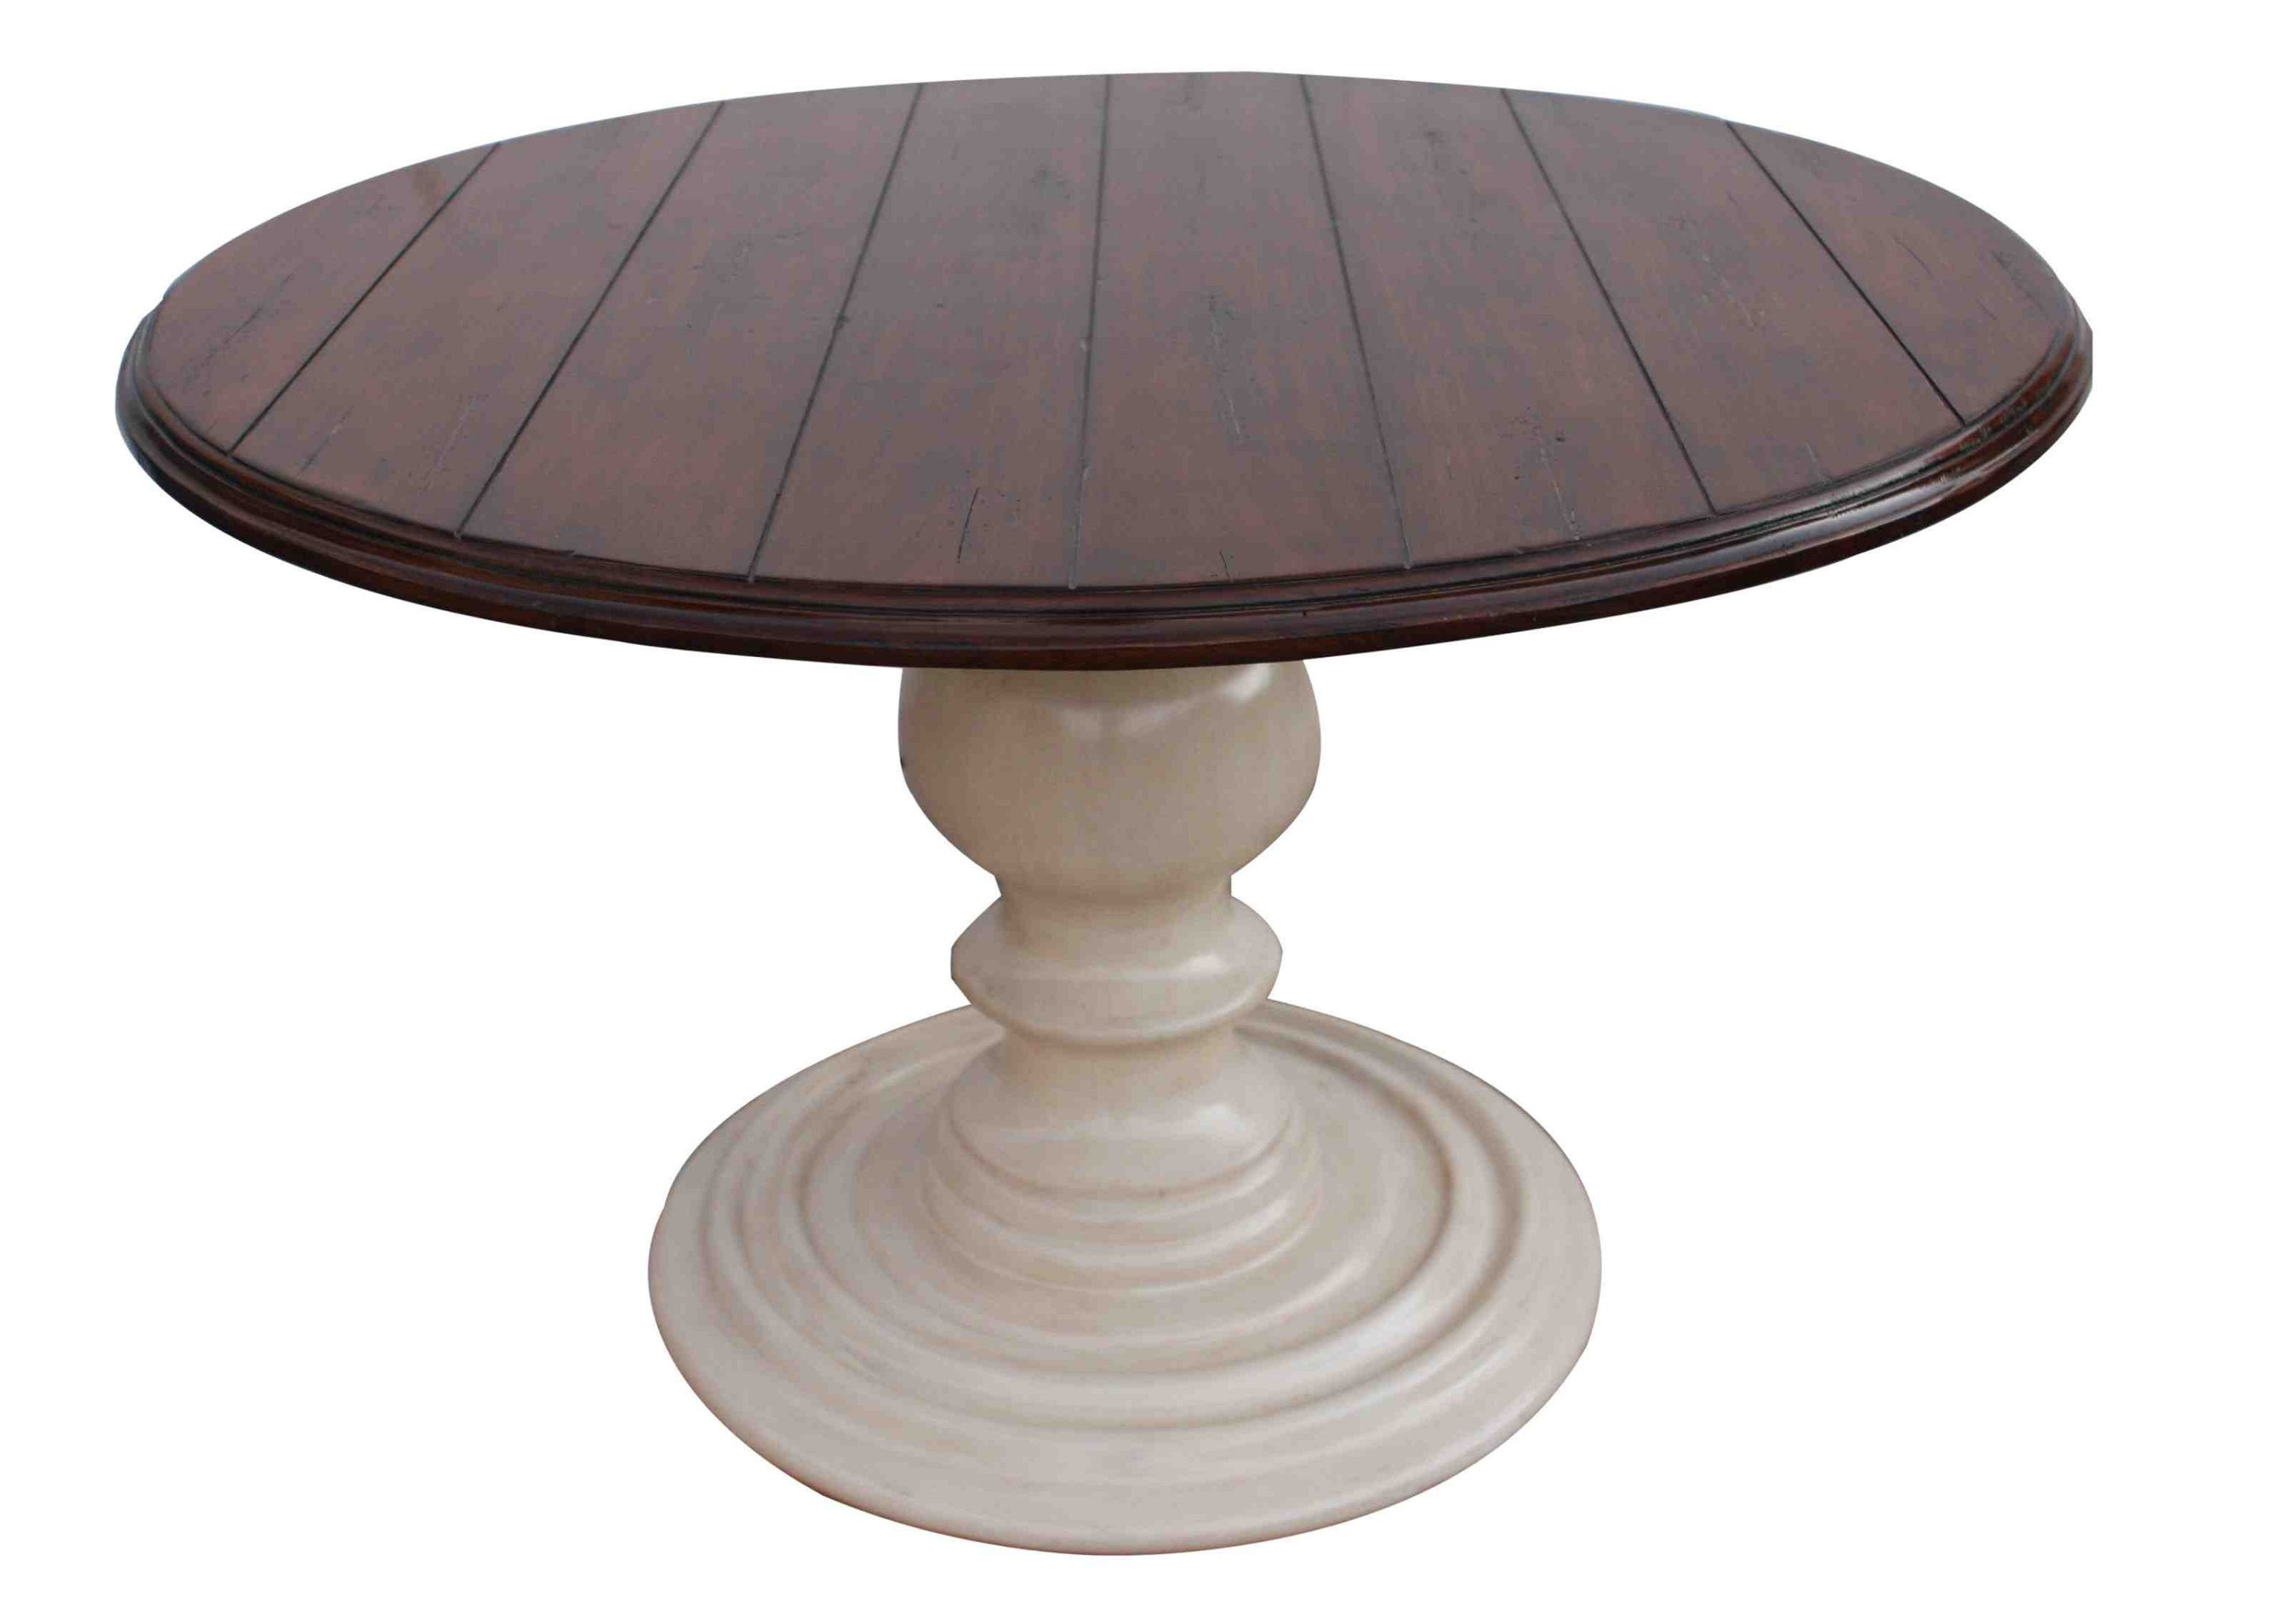 Glorious Two Tone Pedestal Round Dining Table With Brown Mahogany